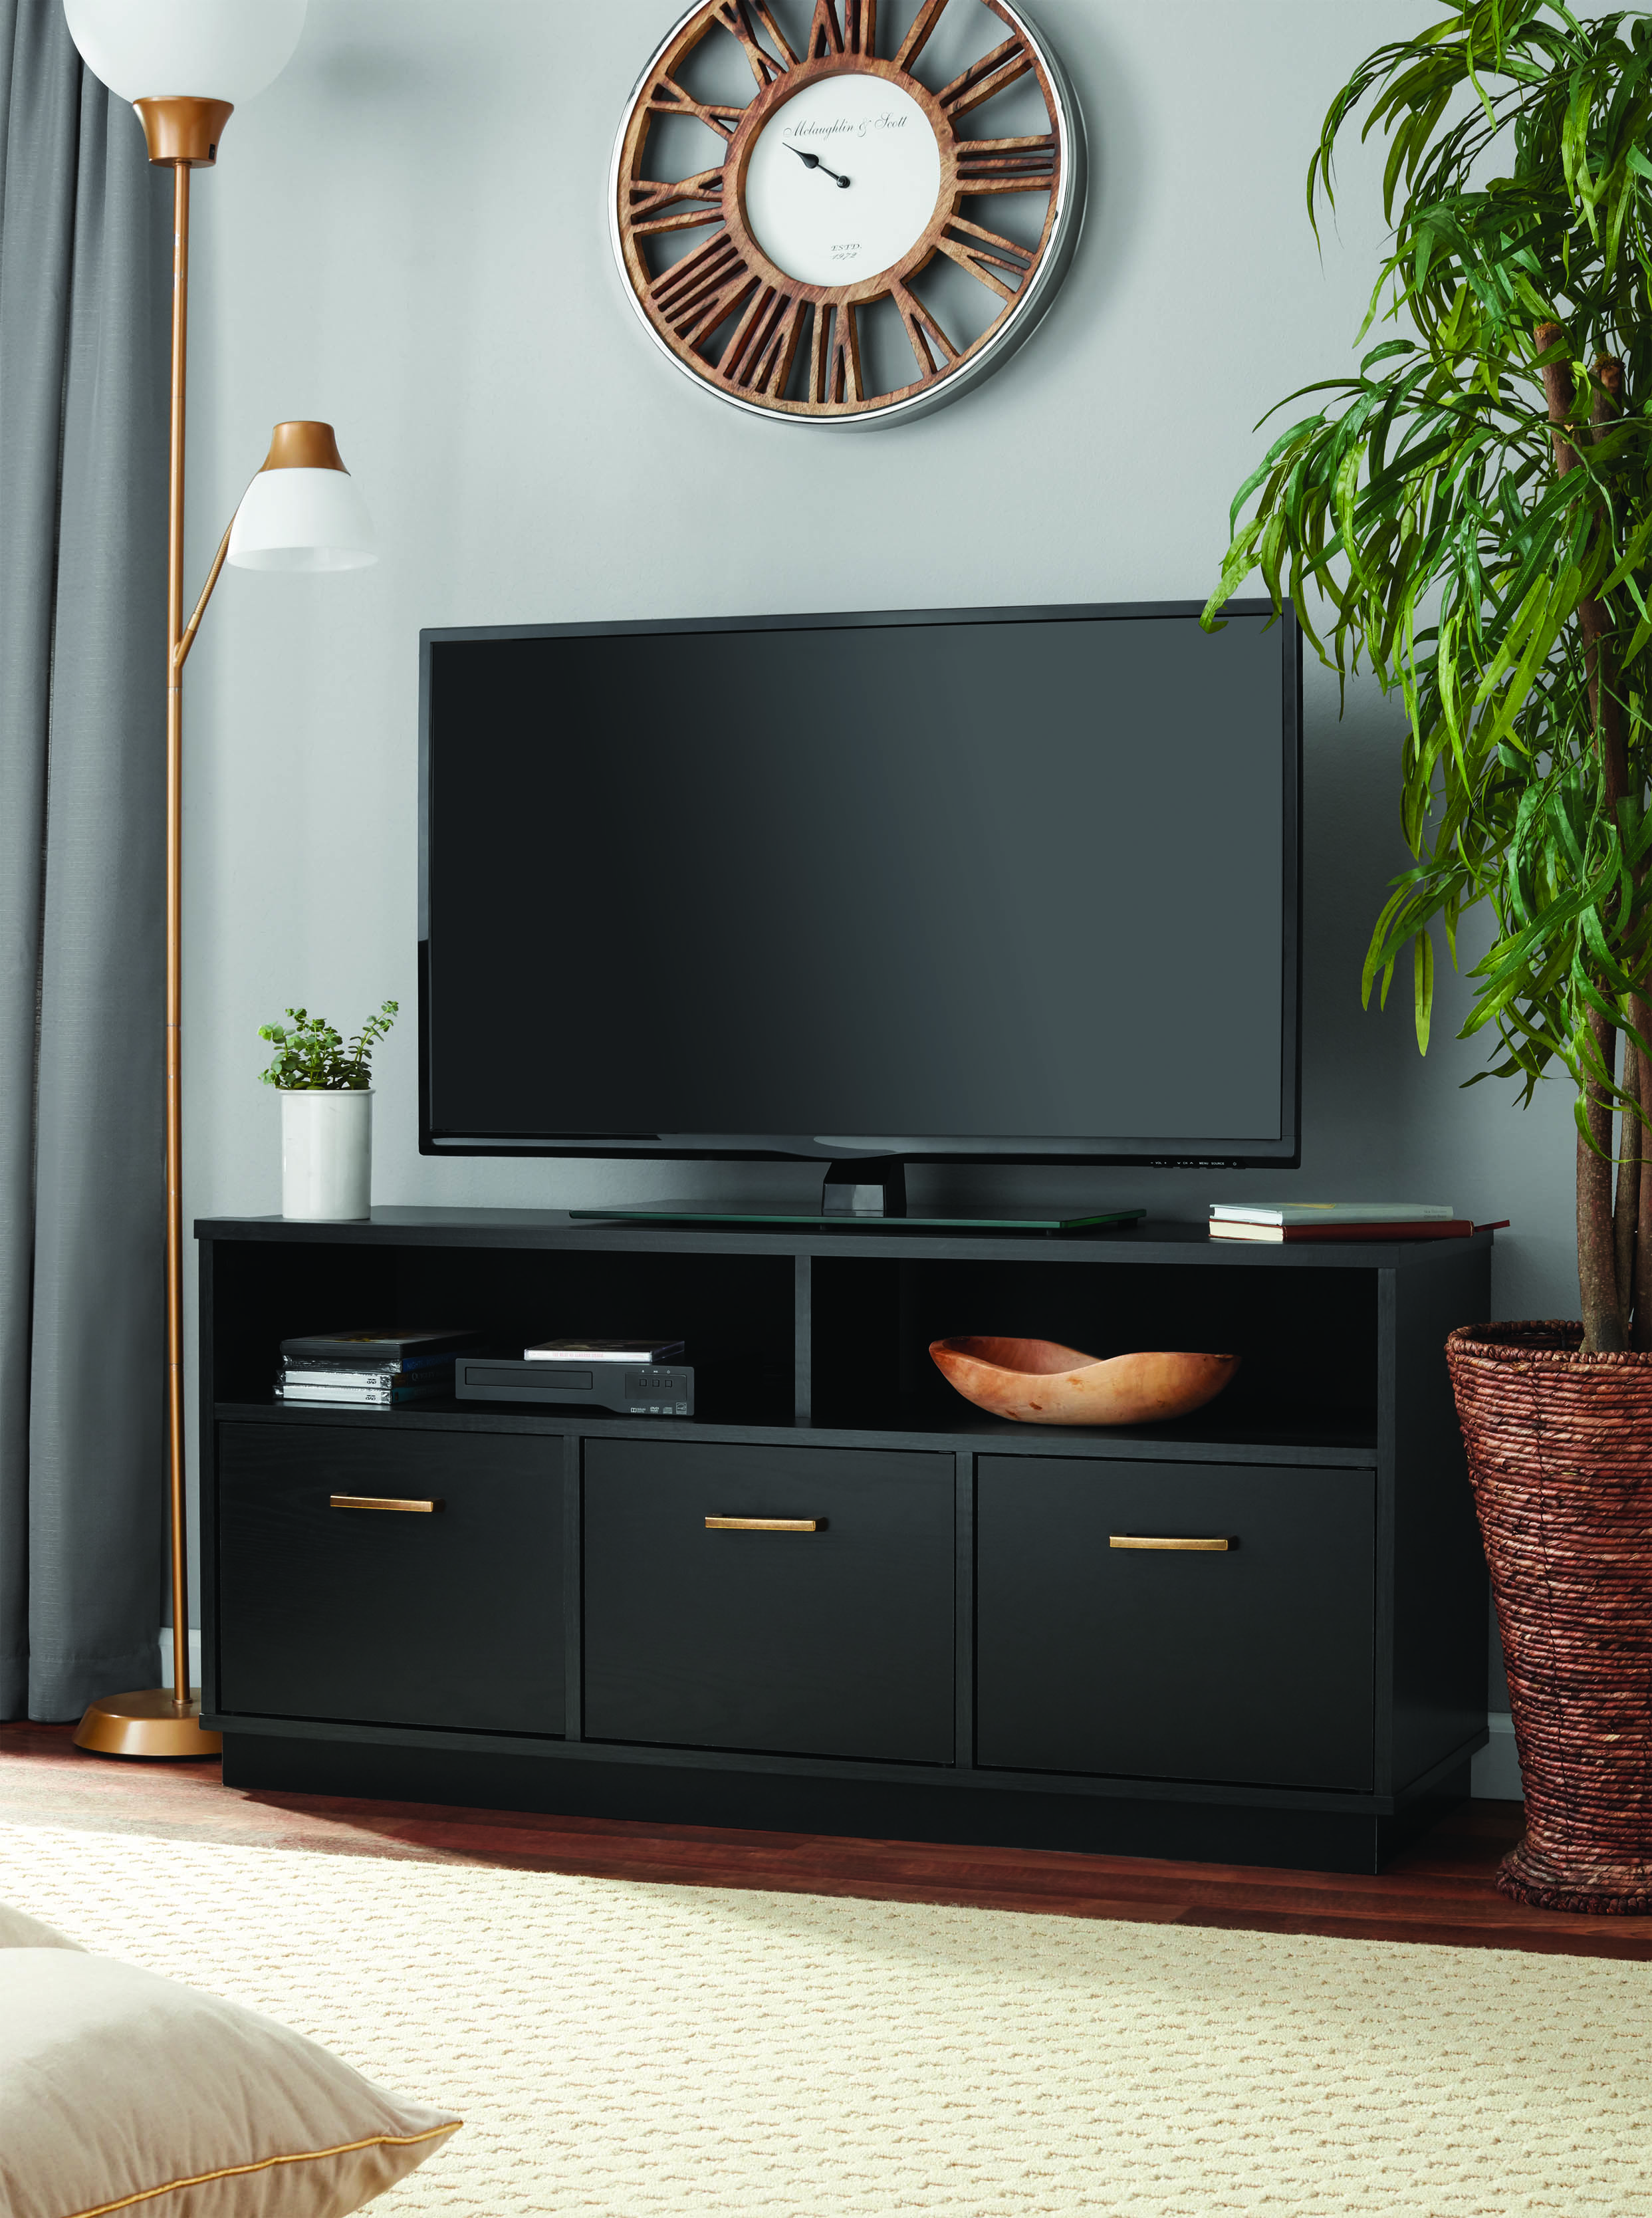 Mainstays 3-Door TV Stand Console for TVs up to 50 ... on